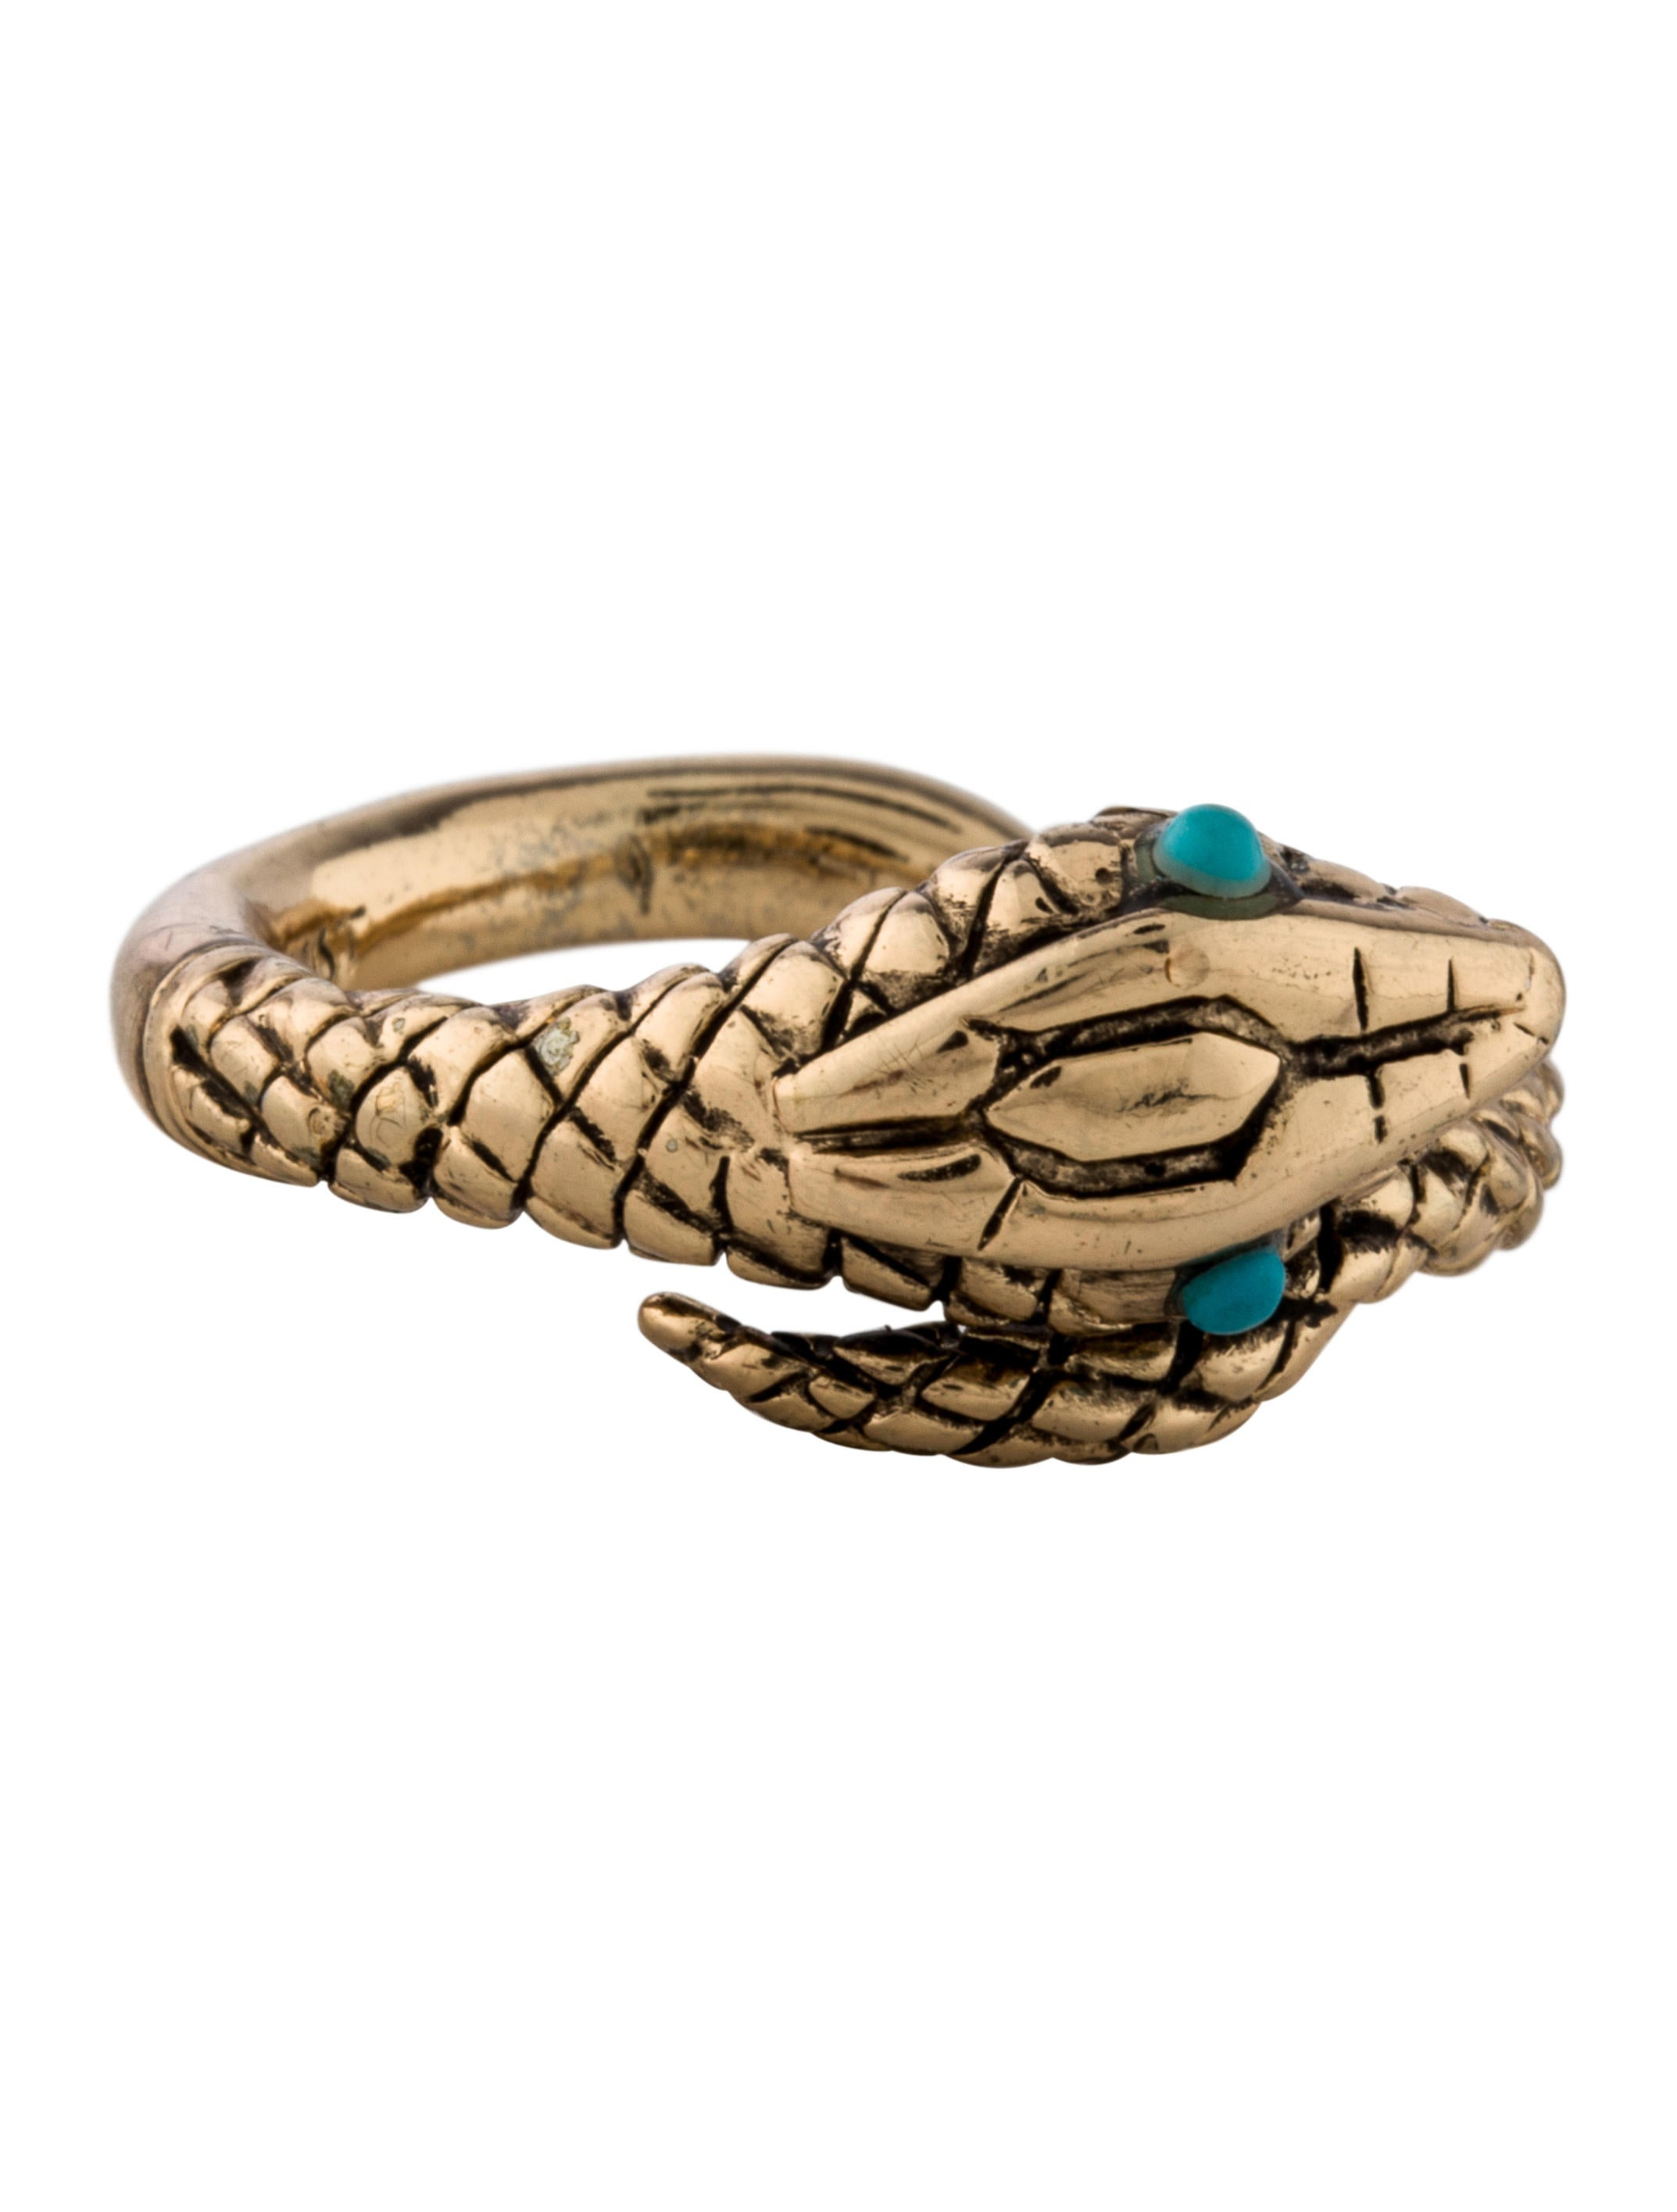 serpent handmade on sterling shipping overstock orders silver indonesia watches jewelry over free ring rings sea product